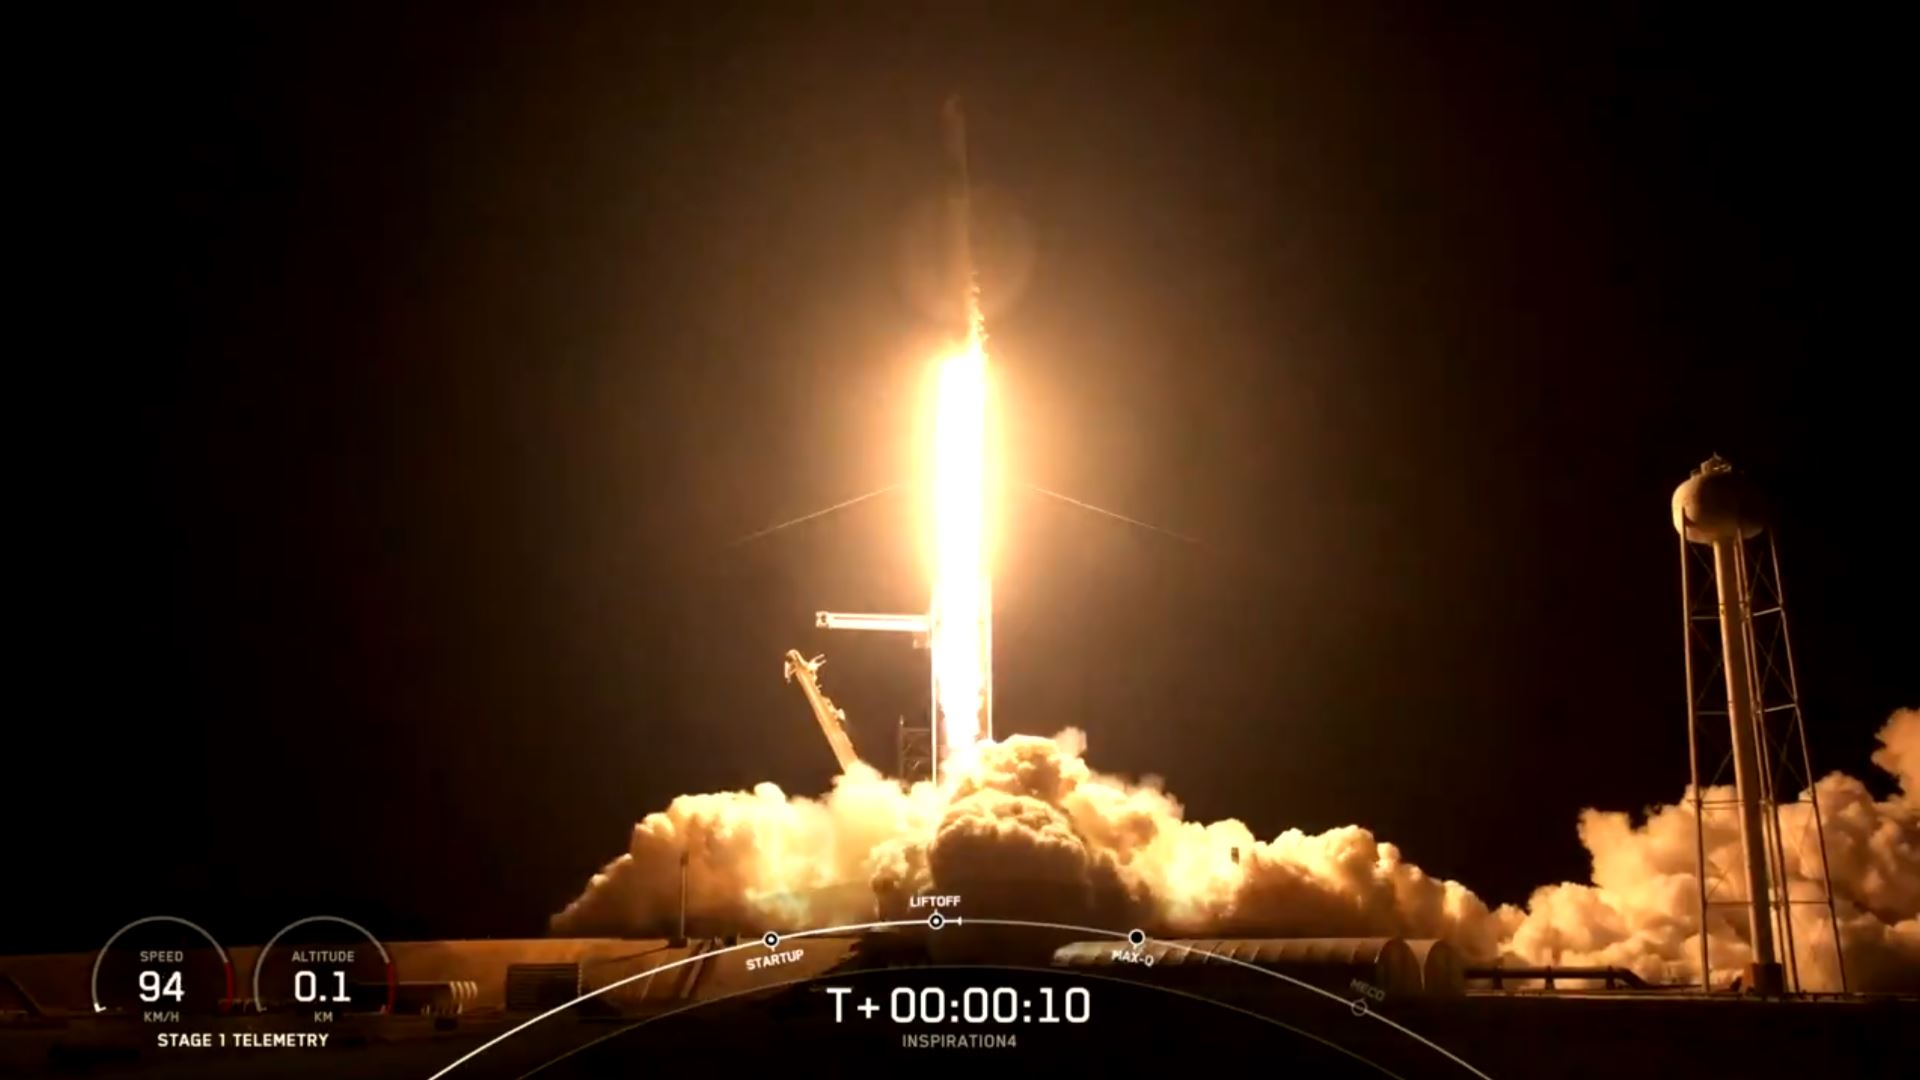 Lift-Off Complete of Historic All-Civilian Spaceflight Mission